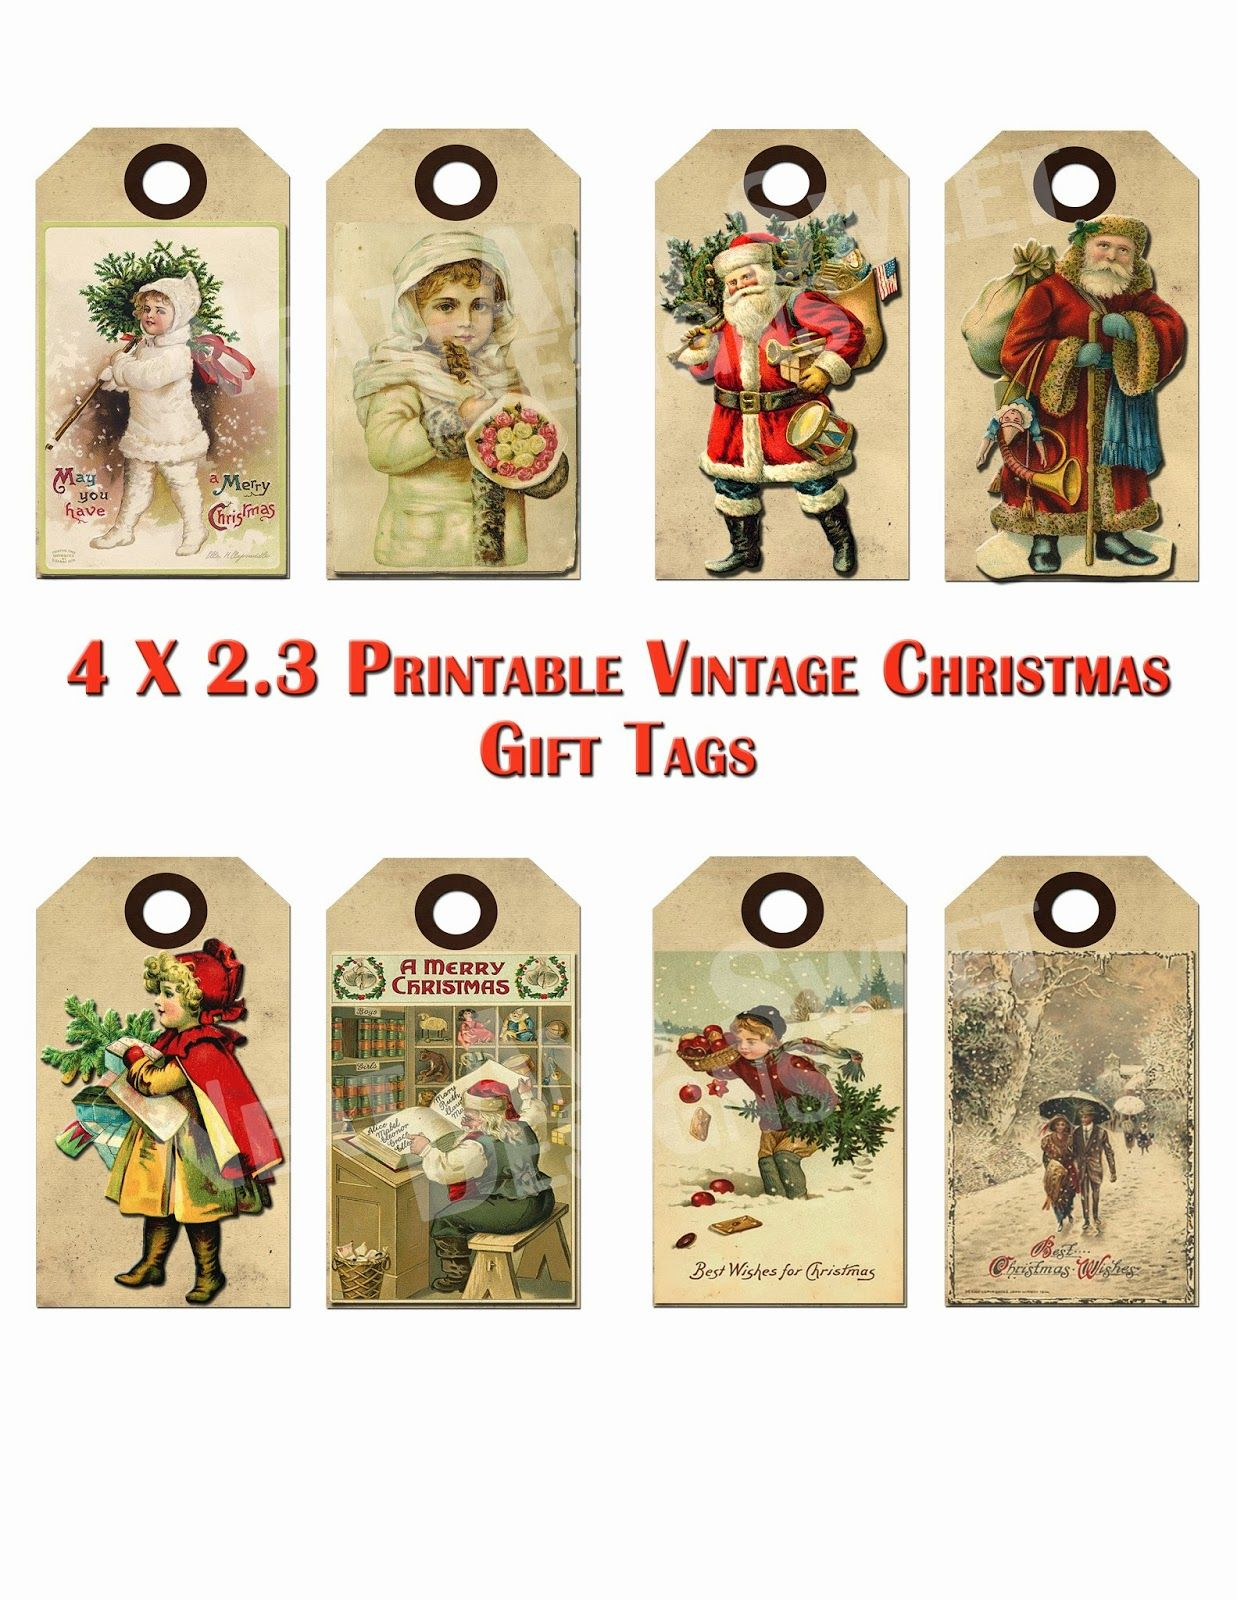 Free Printable Vintage Christmas Tags - Google Search | Craft Ideas - Free Printable Vintage Christmas Tags For Gifts